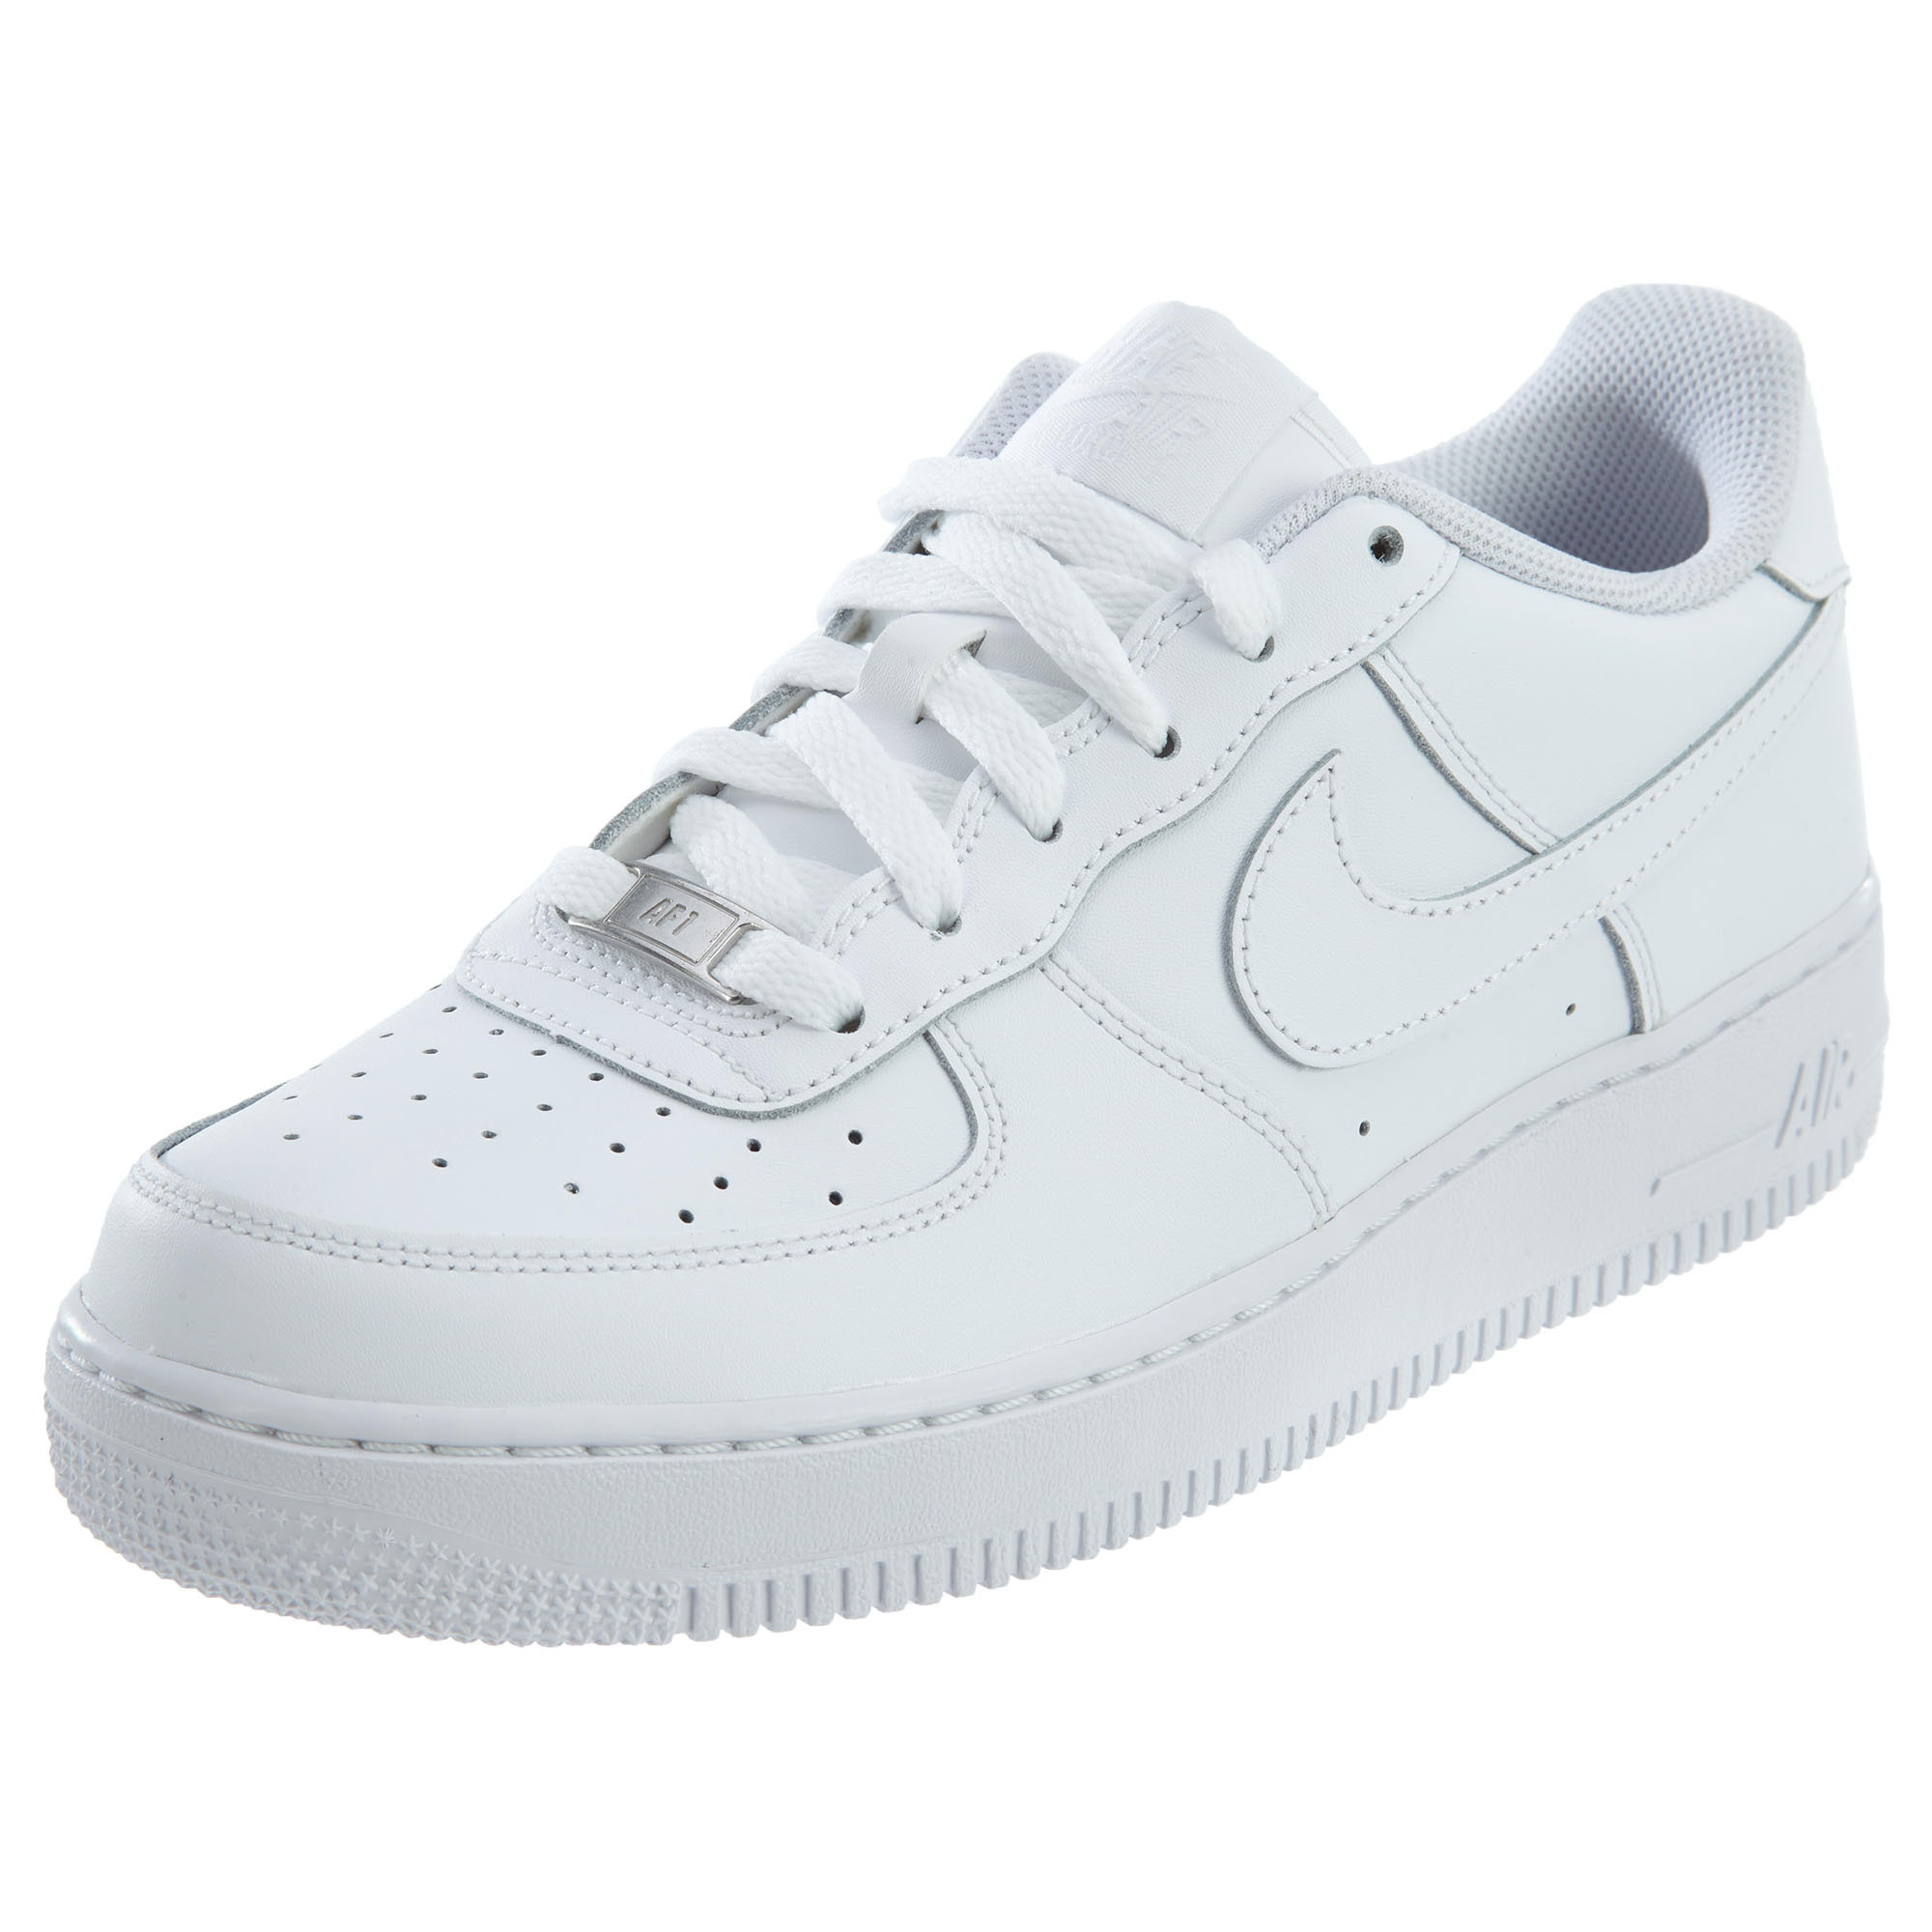 nike air force 1 baloncesto